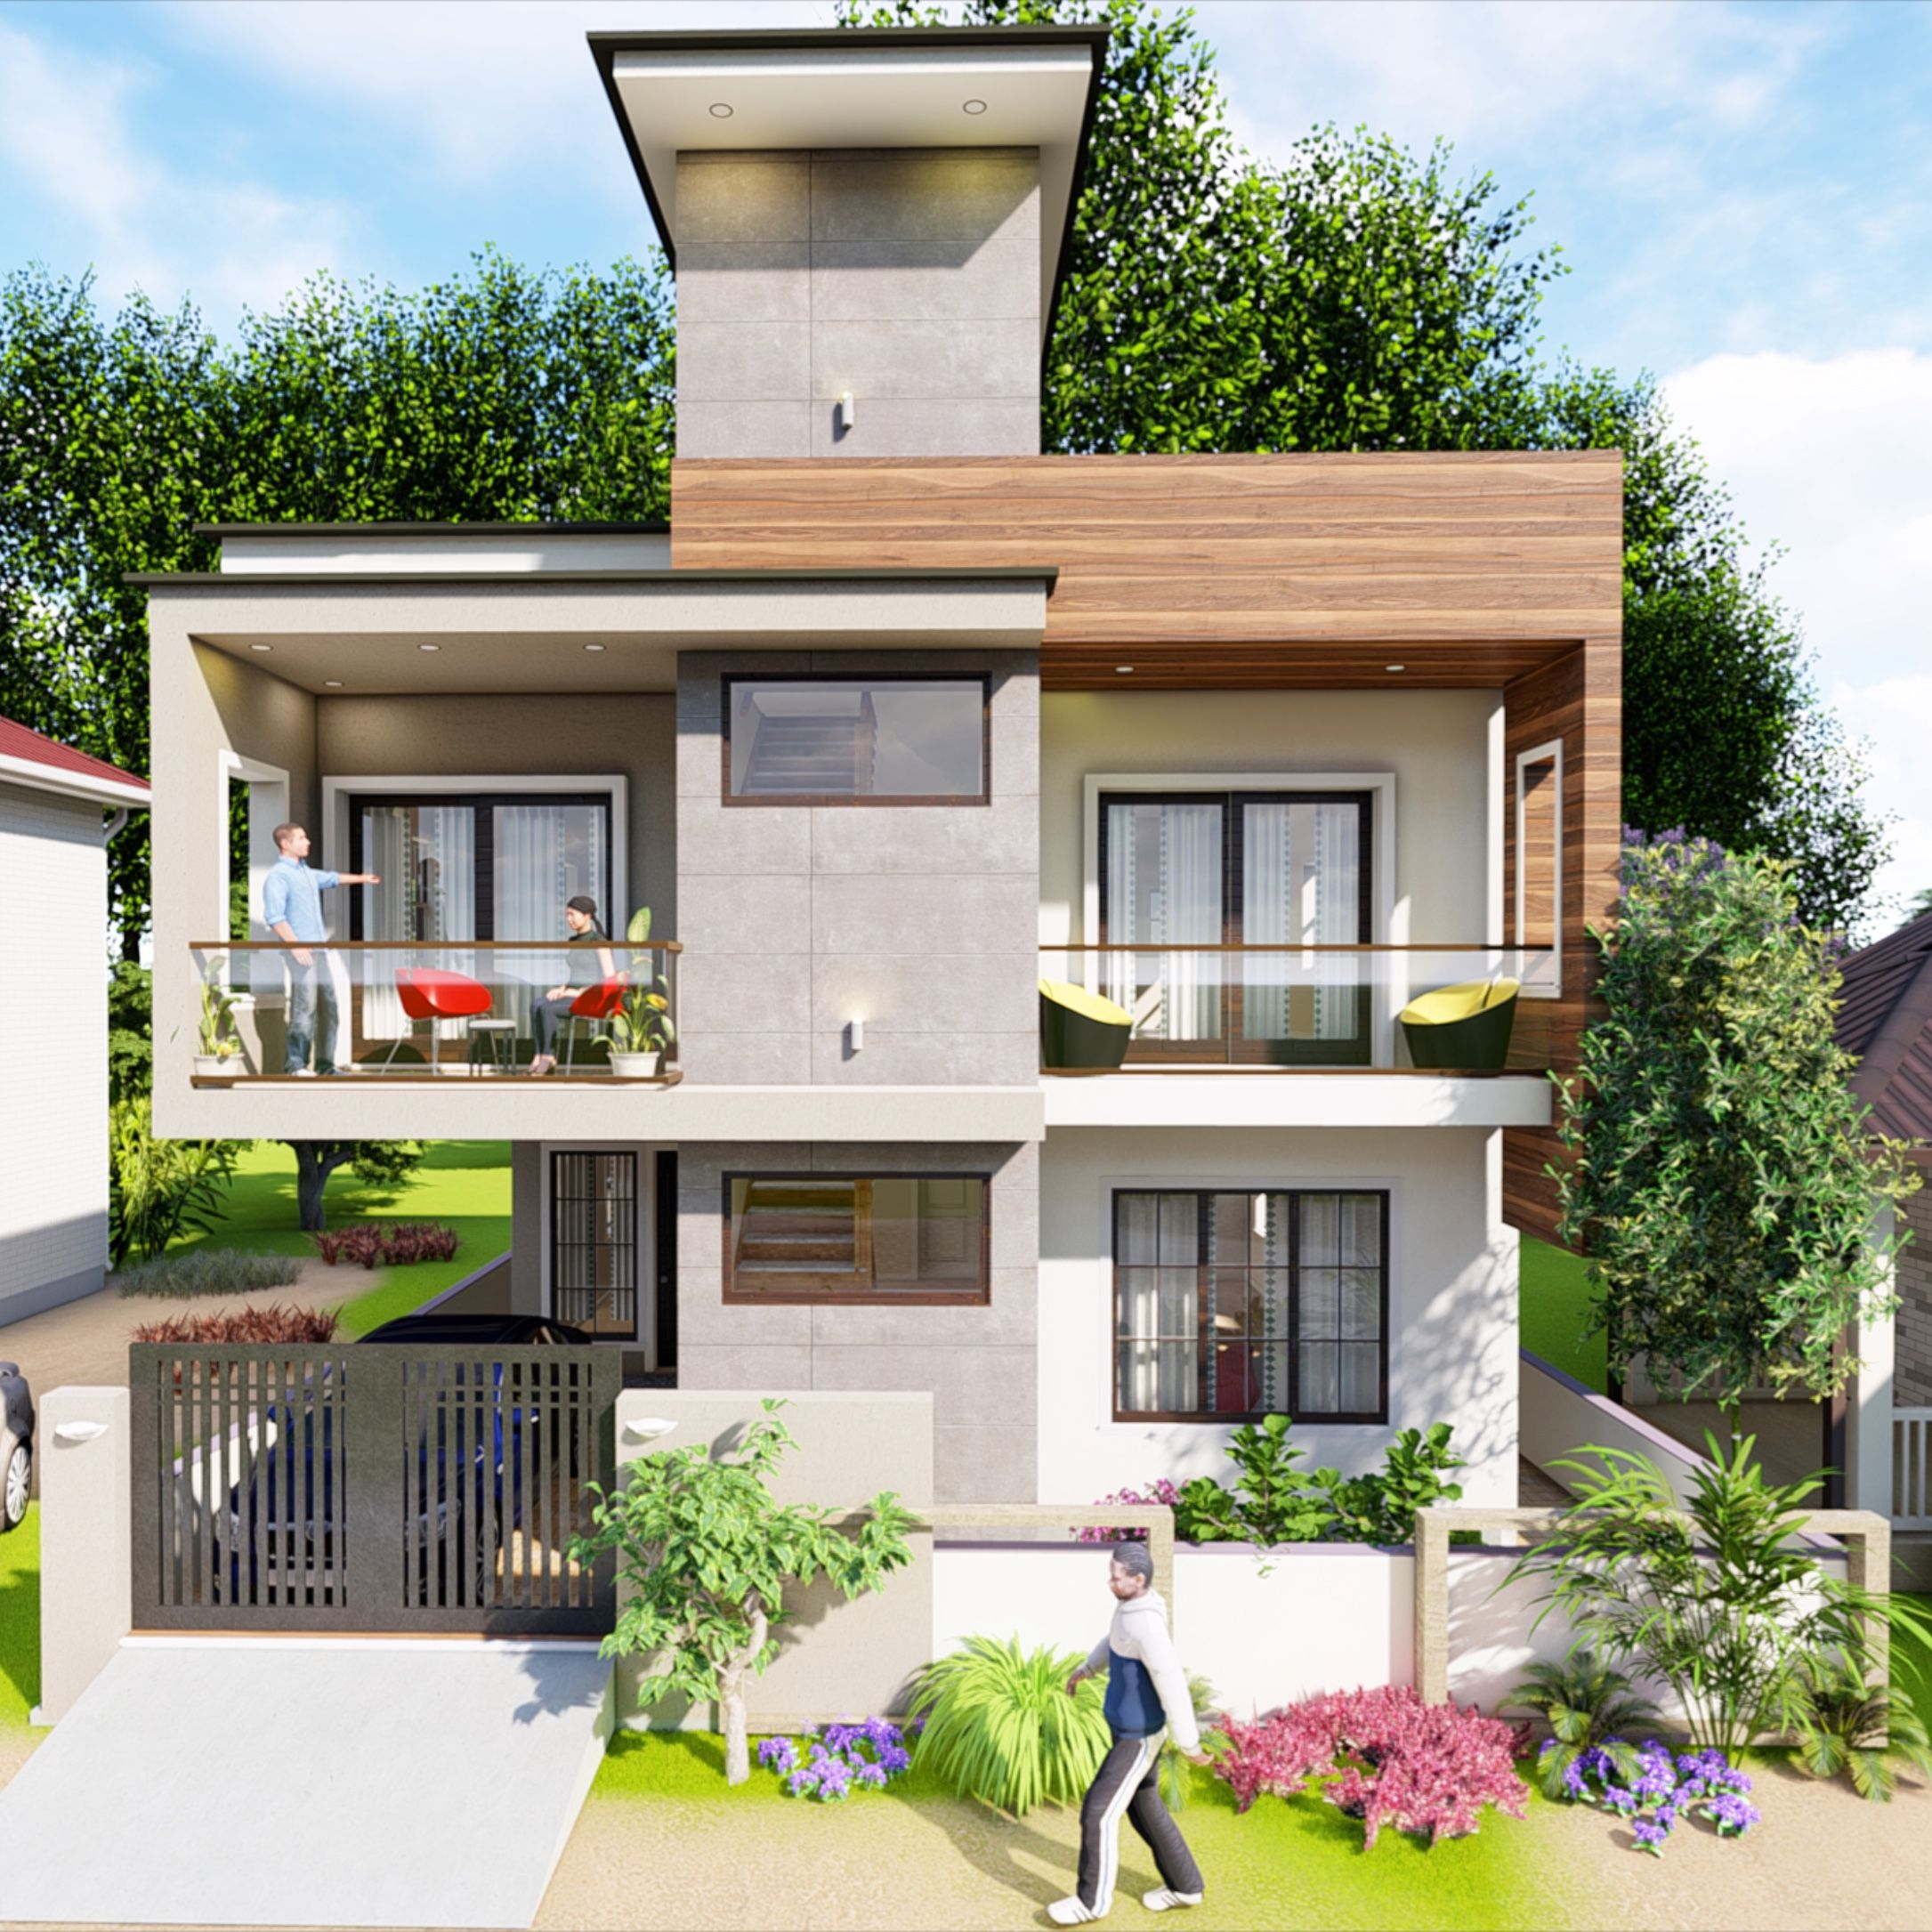 Modern Home Design Ideas Exterior:  Modern Exterior View For Your Dream House . Simple And